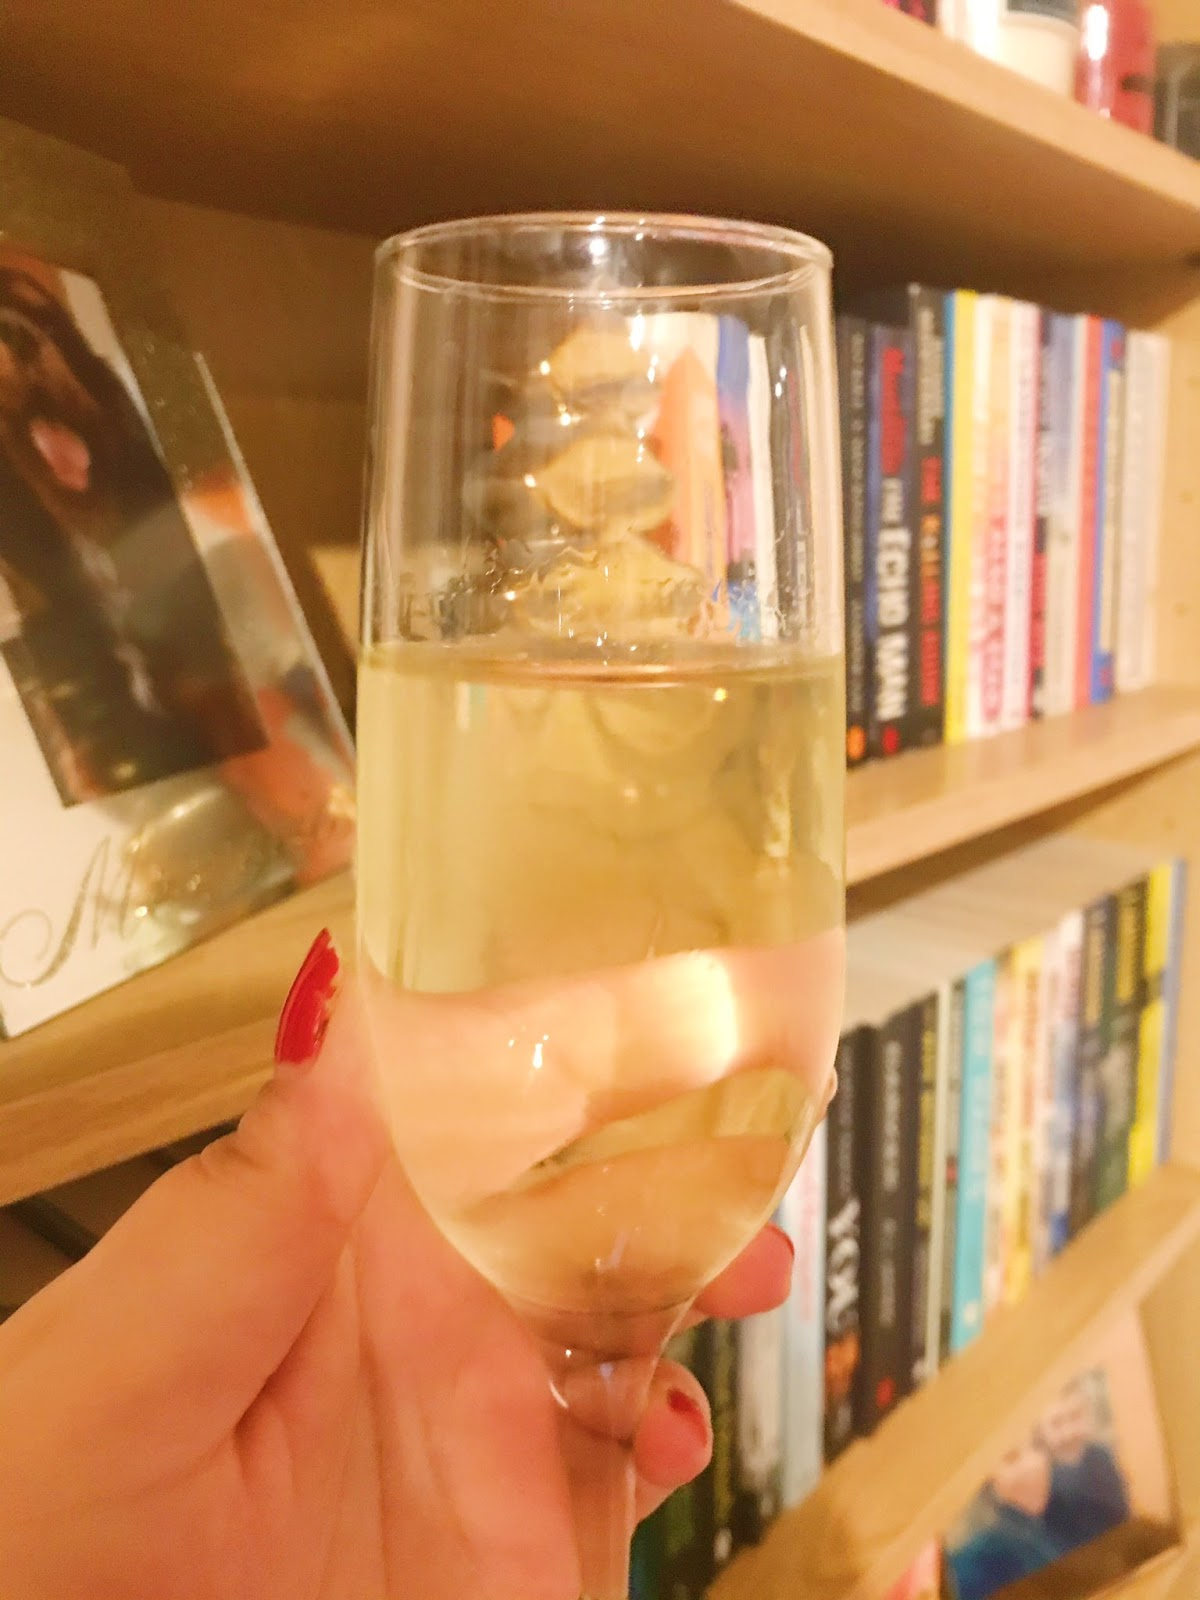 champagne glass held up in front of book case